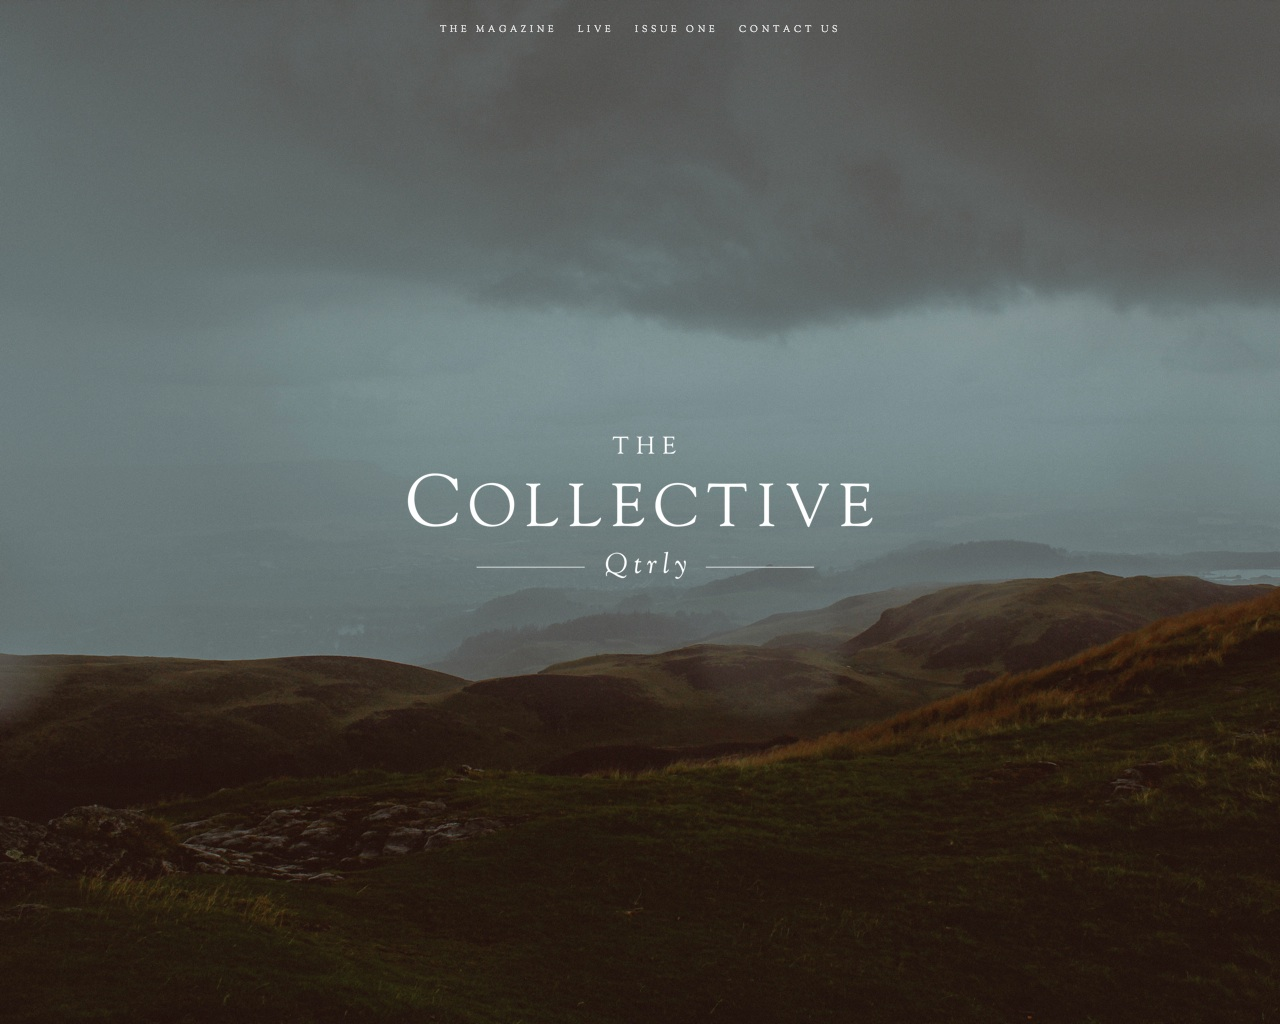 The collective quarterly 20130828 jpg